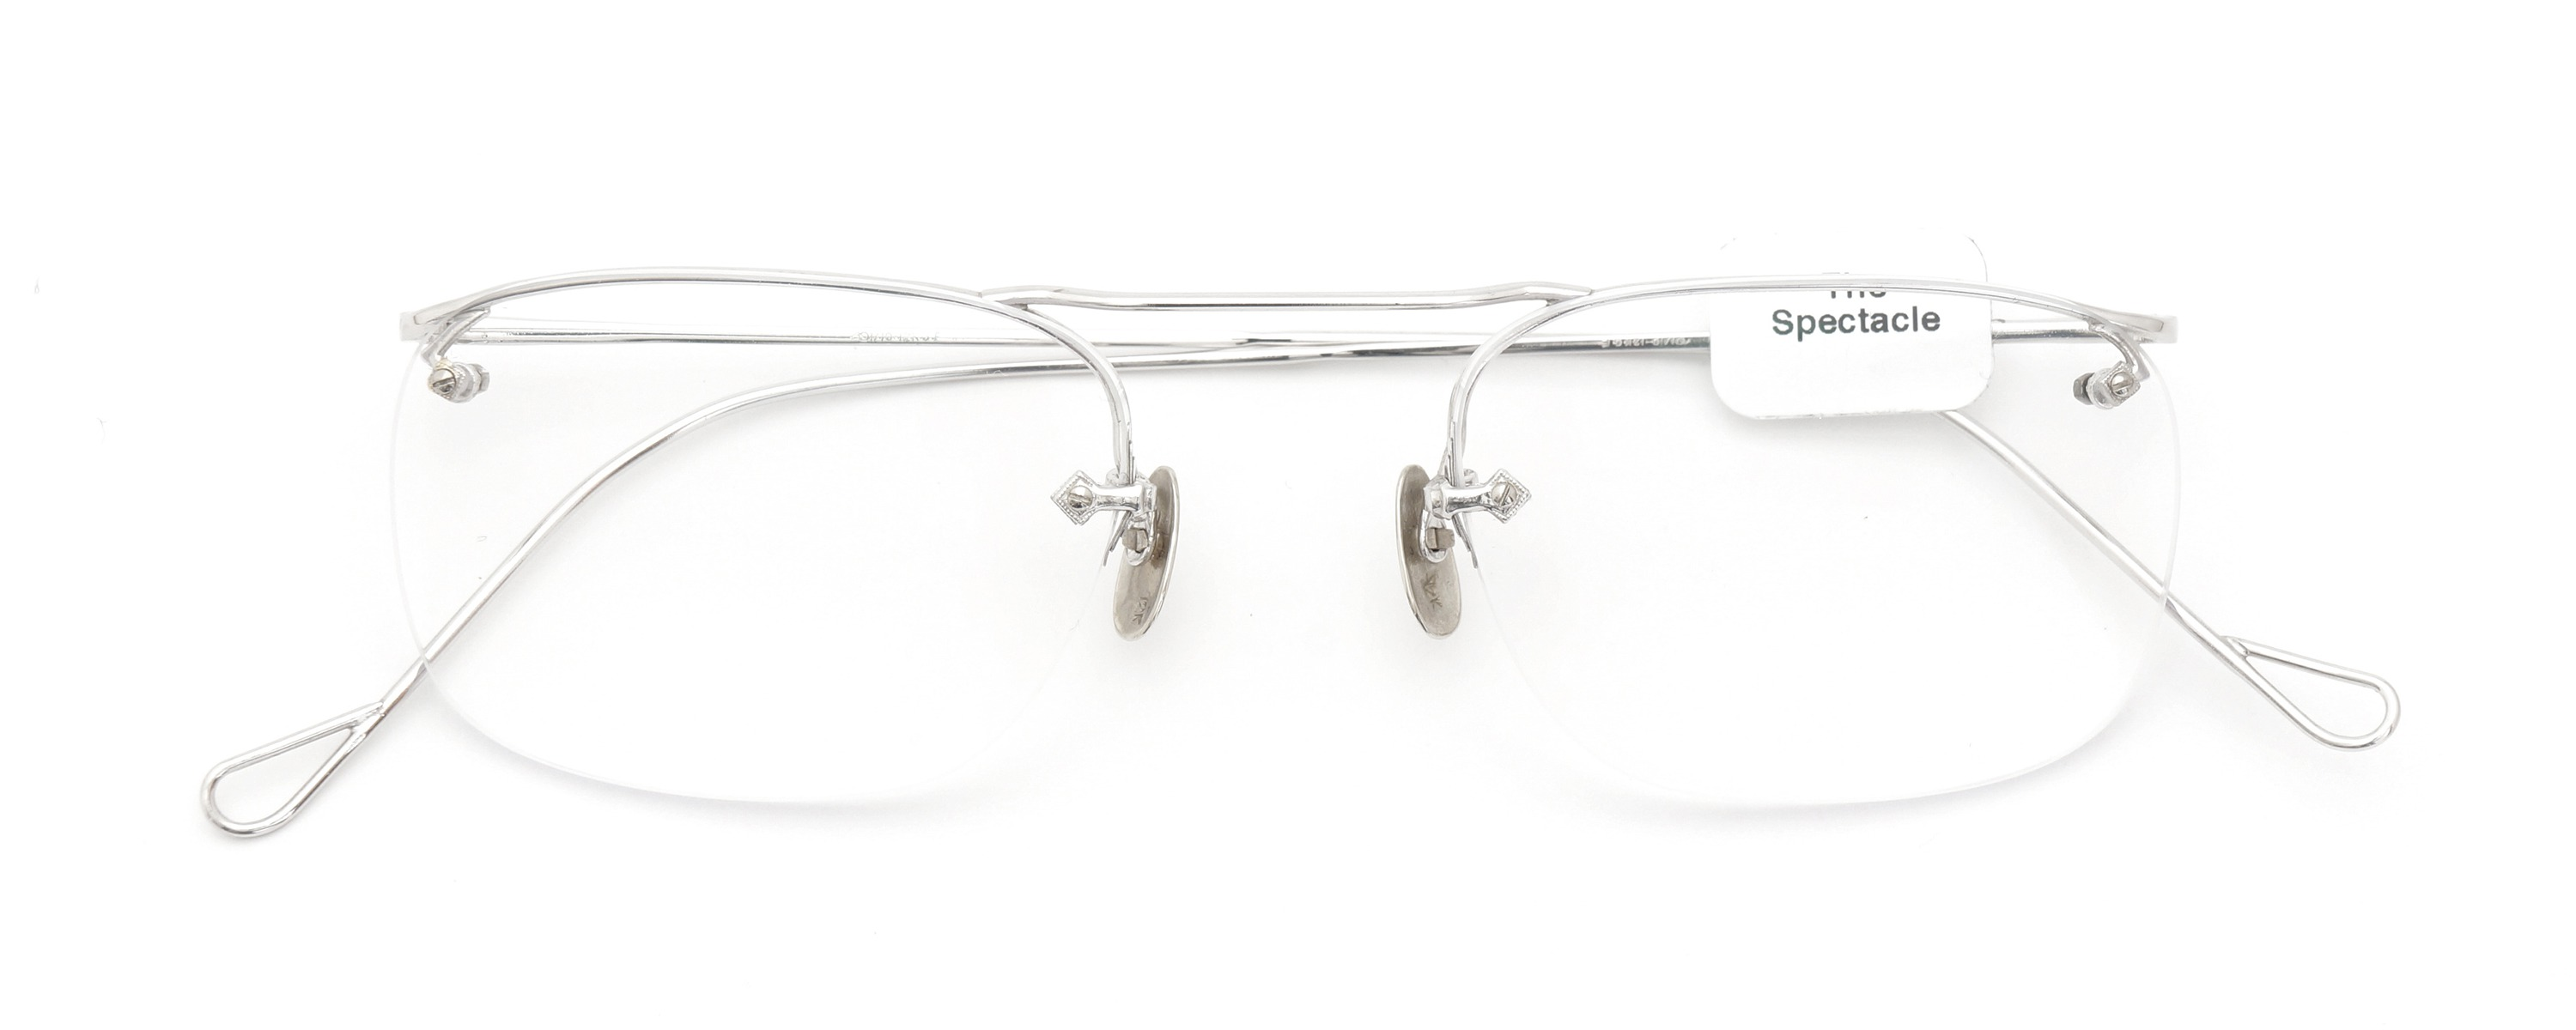 The Spectacle メガネ 1940 American Optical Everjax Bar Sterling WG 12kPads 49-21 イメージ2